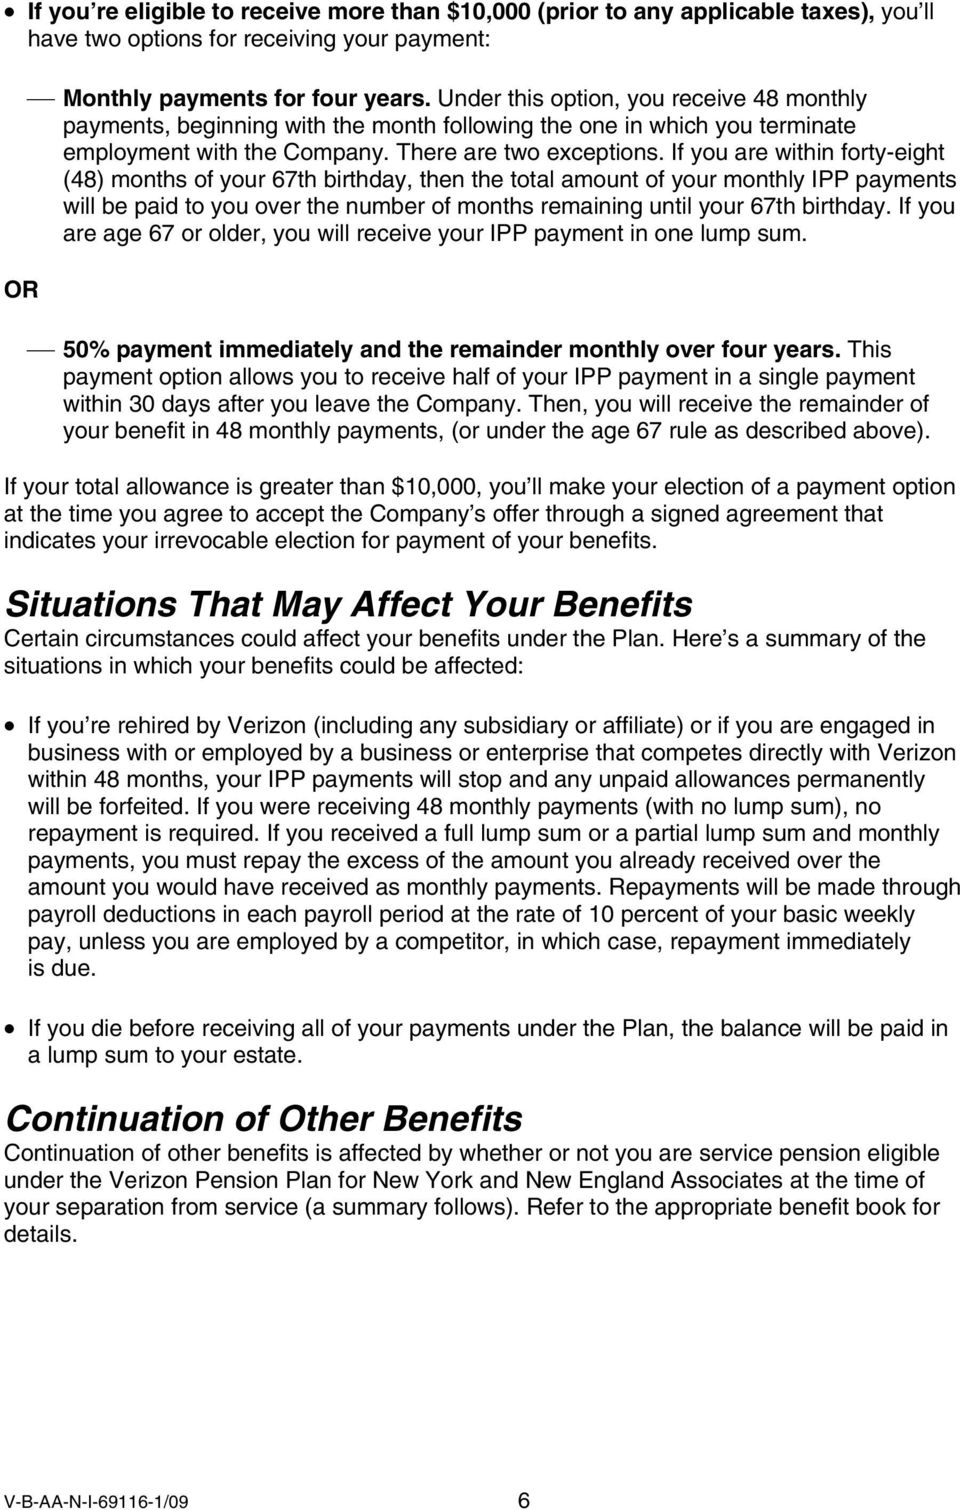 If you are within forty-eight (48) months of your 67th birthday, then the total amount of your monthly IPP payments will be paid to you over the number of months remaining until your 67th birthday.